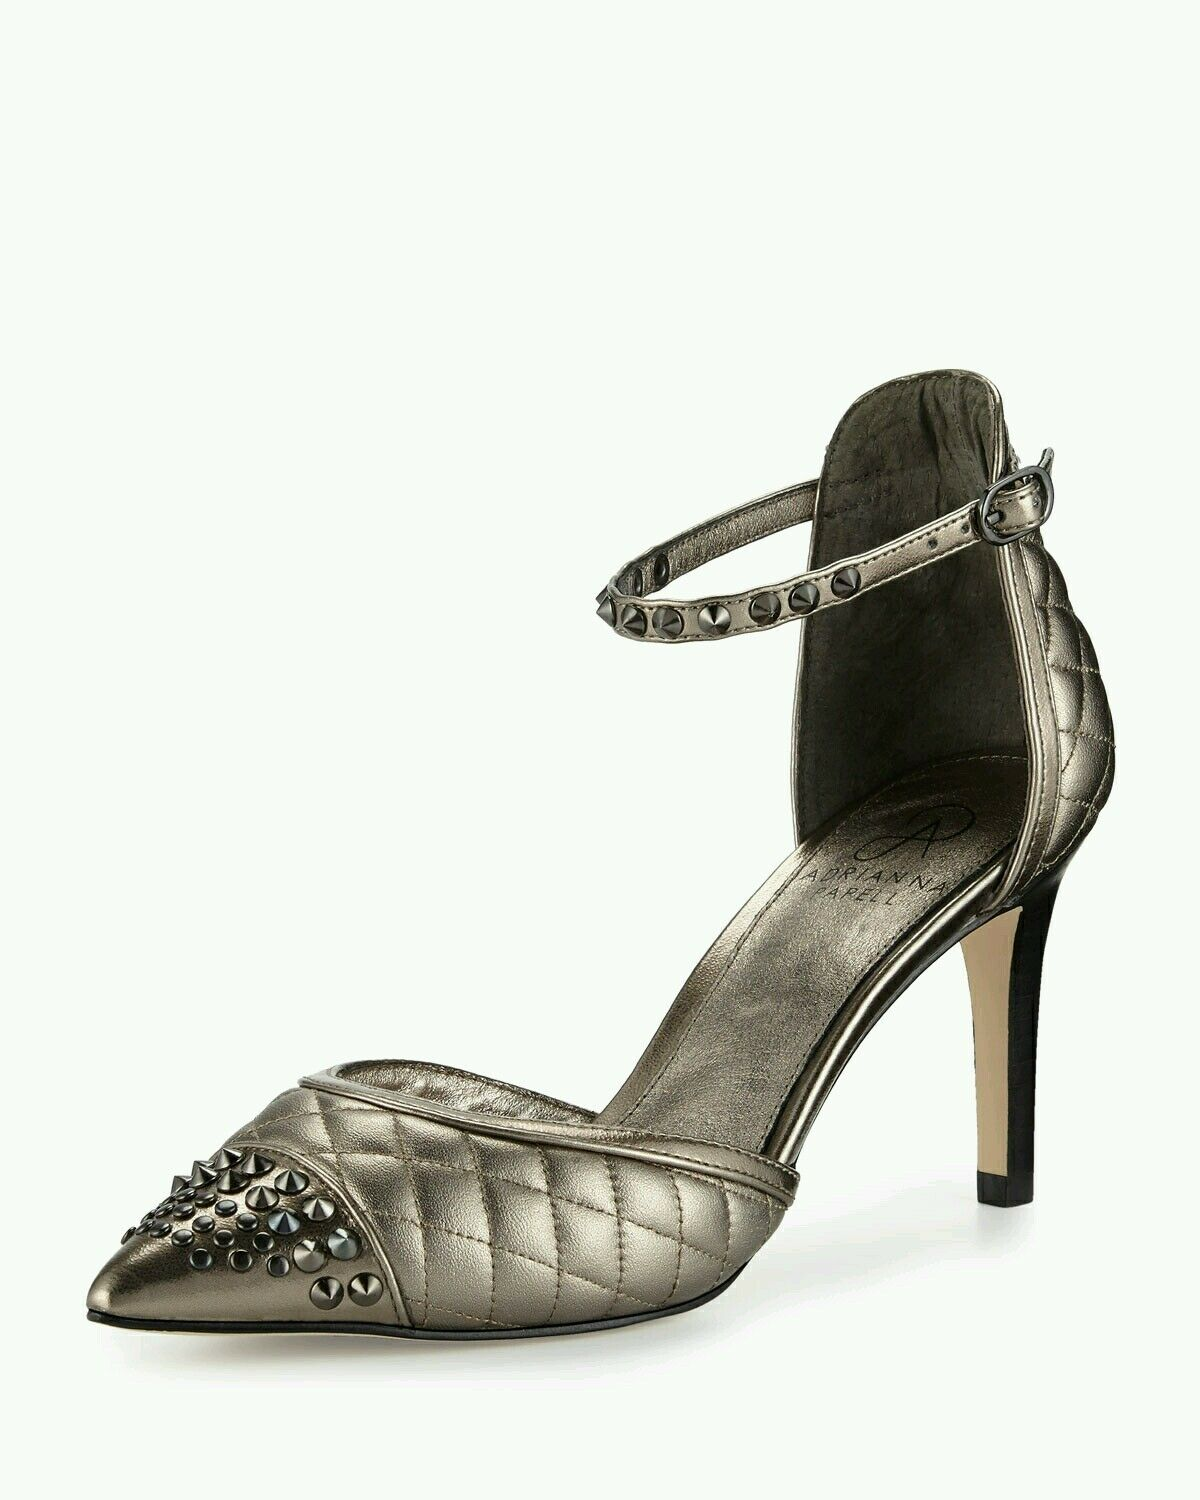 Adrianna Papell Hope Quilted Pointed-Toe d'Orsay Pump Lush Gunmetal Sz 7.5  139